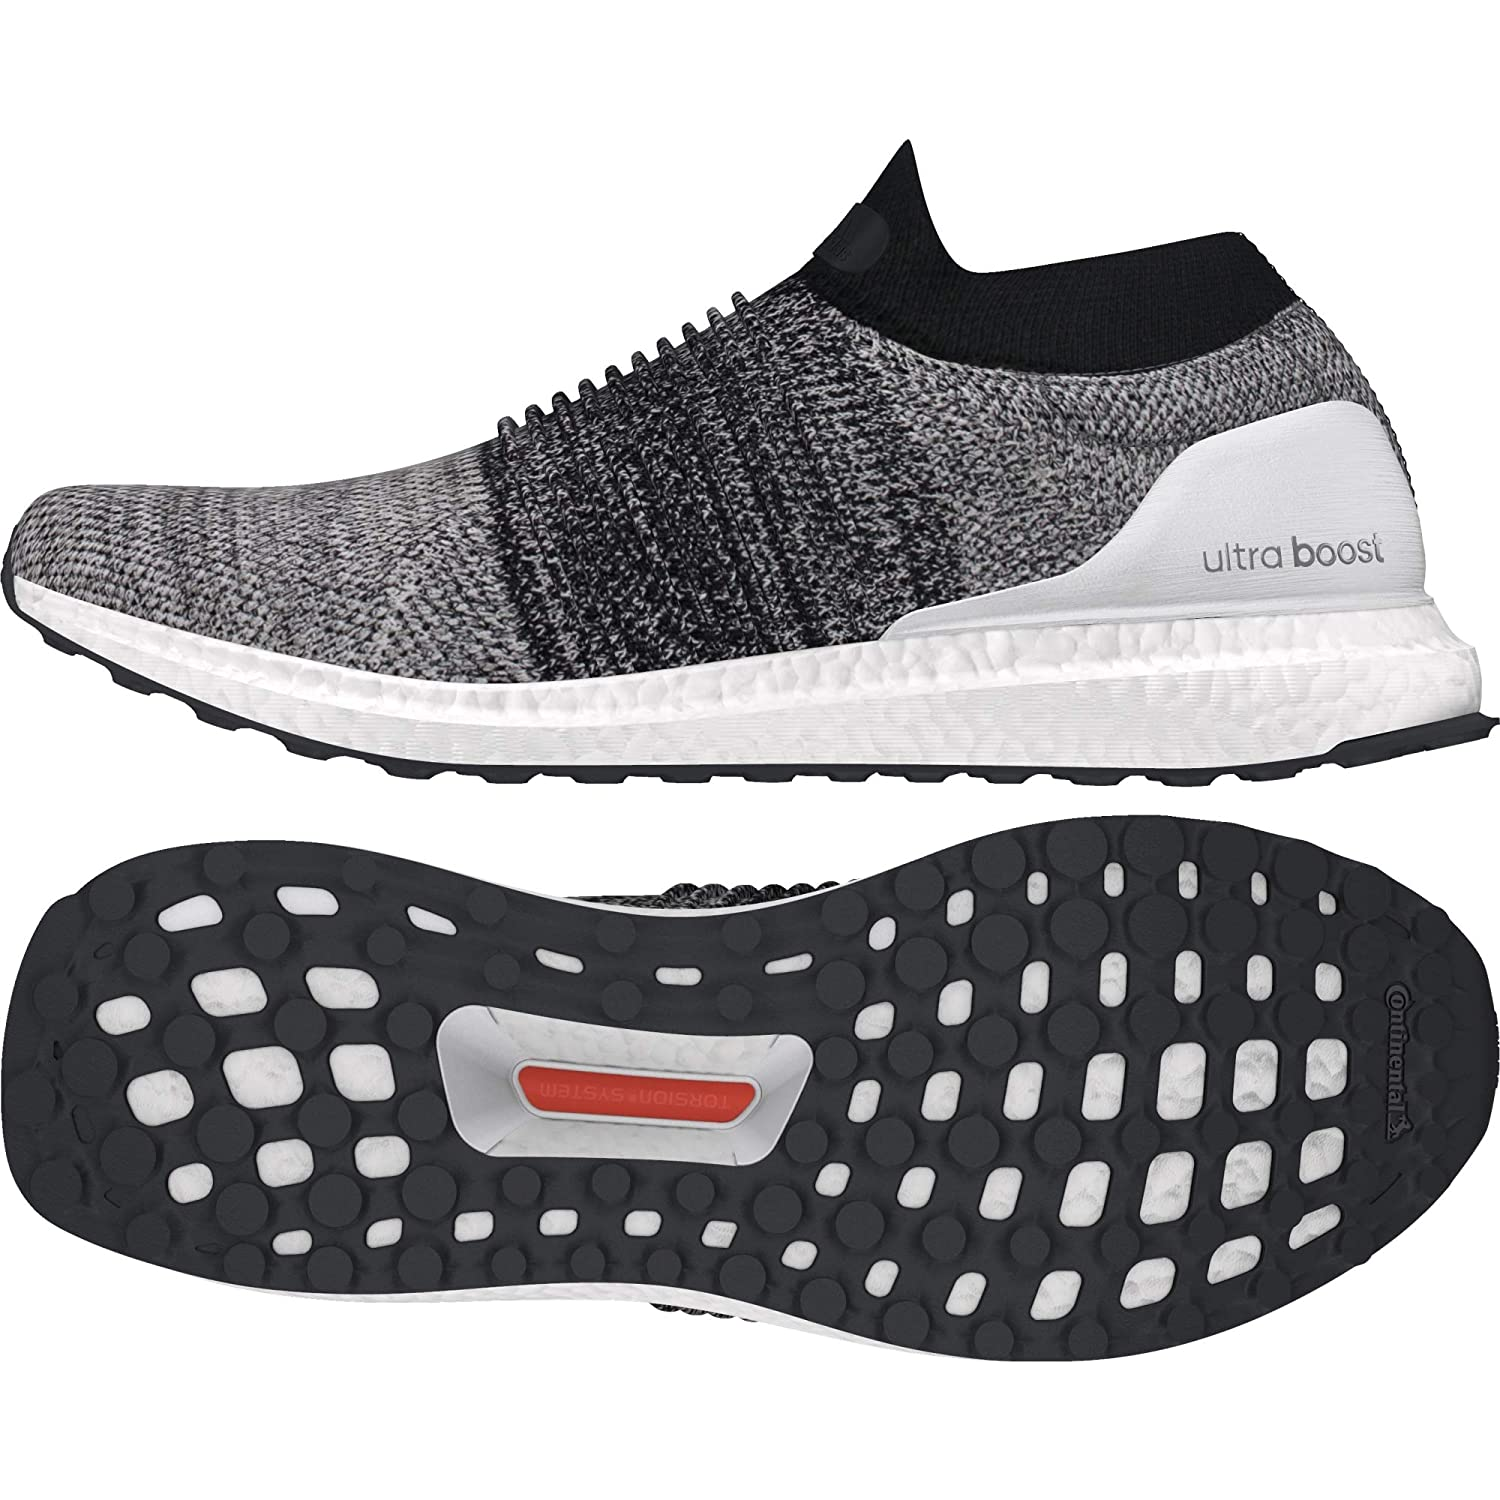 c38e88e5878 Adidas Men s Ultraboost Laceless Ftwwht Ftwwht Cblack Running Shoes - 8  UK India (42 1 9 EU)(BB6141)  Buy Online at Low Prices in India - Amazon.in